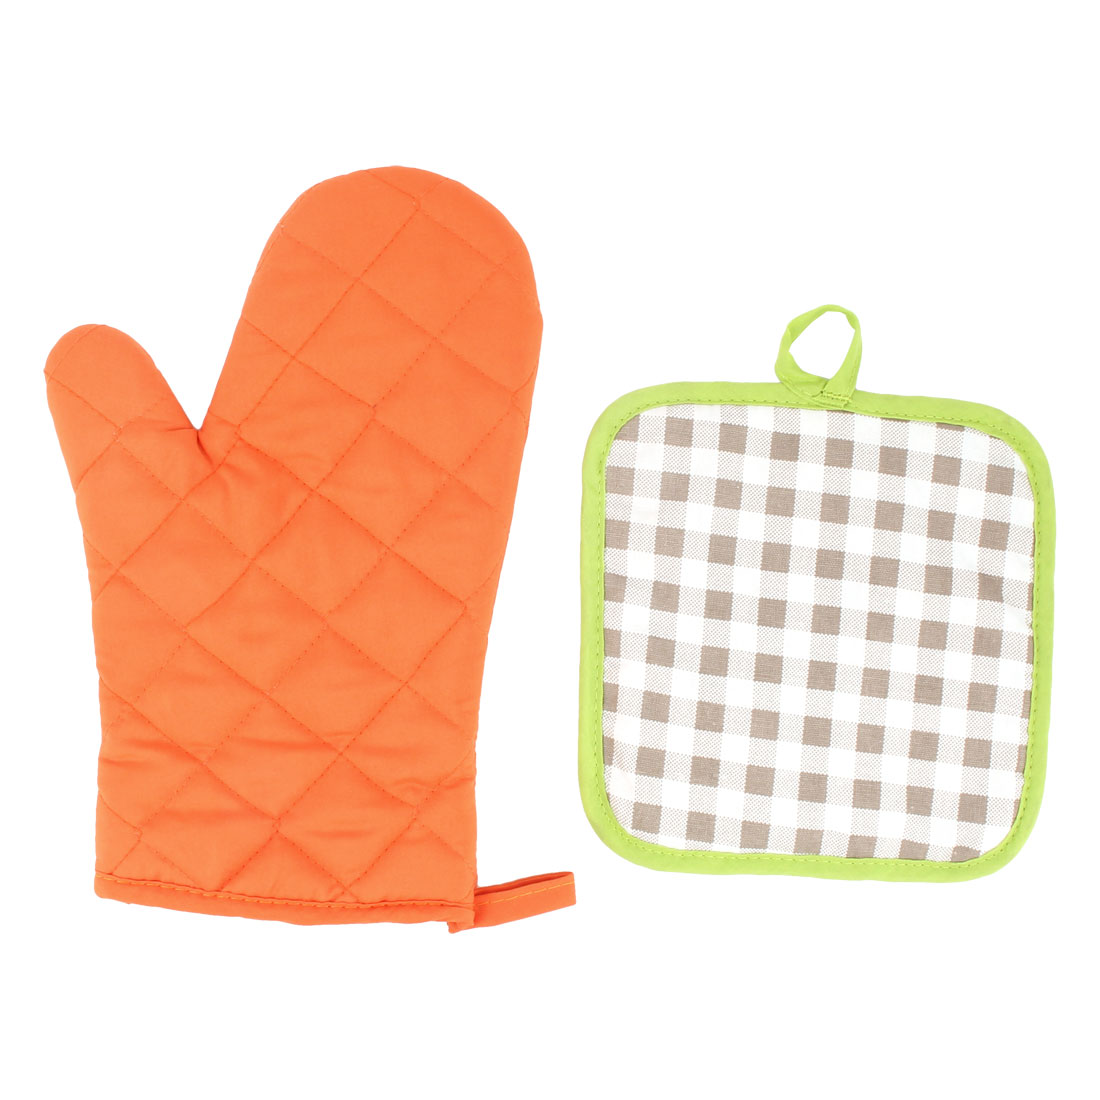 Kitchen Insulated Padded Heat Resistant Baking Tool Oven Gloves Mitt Pair